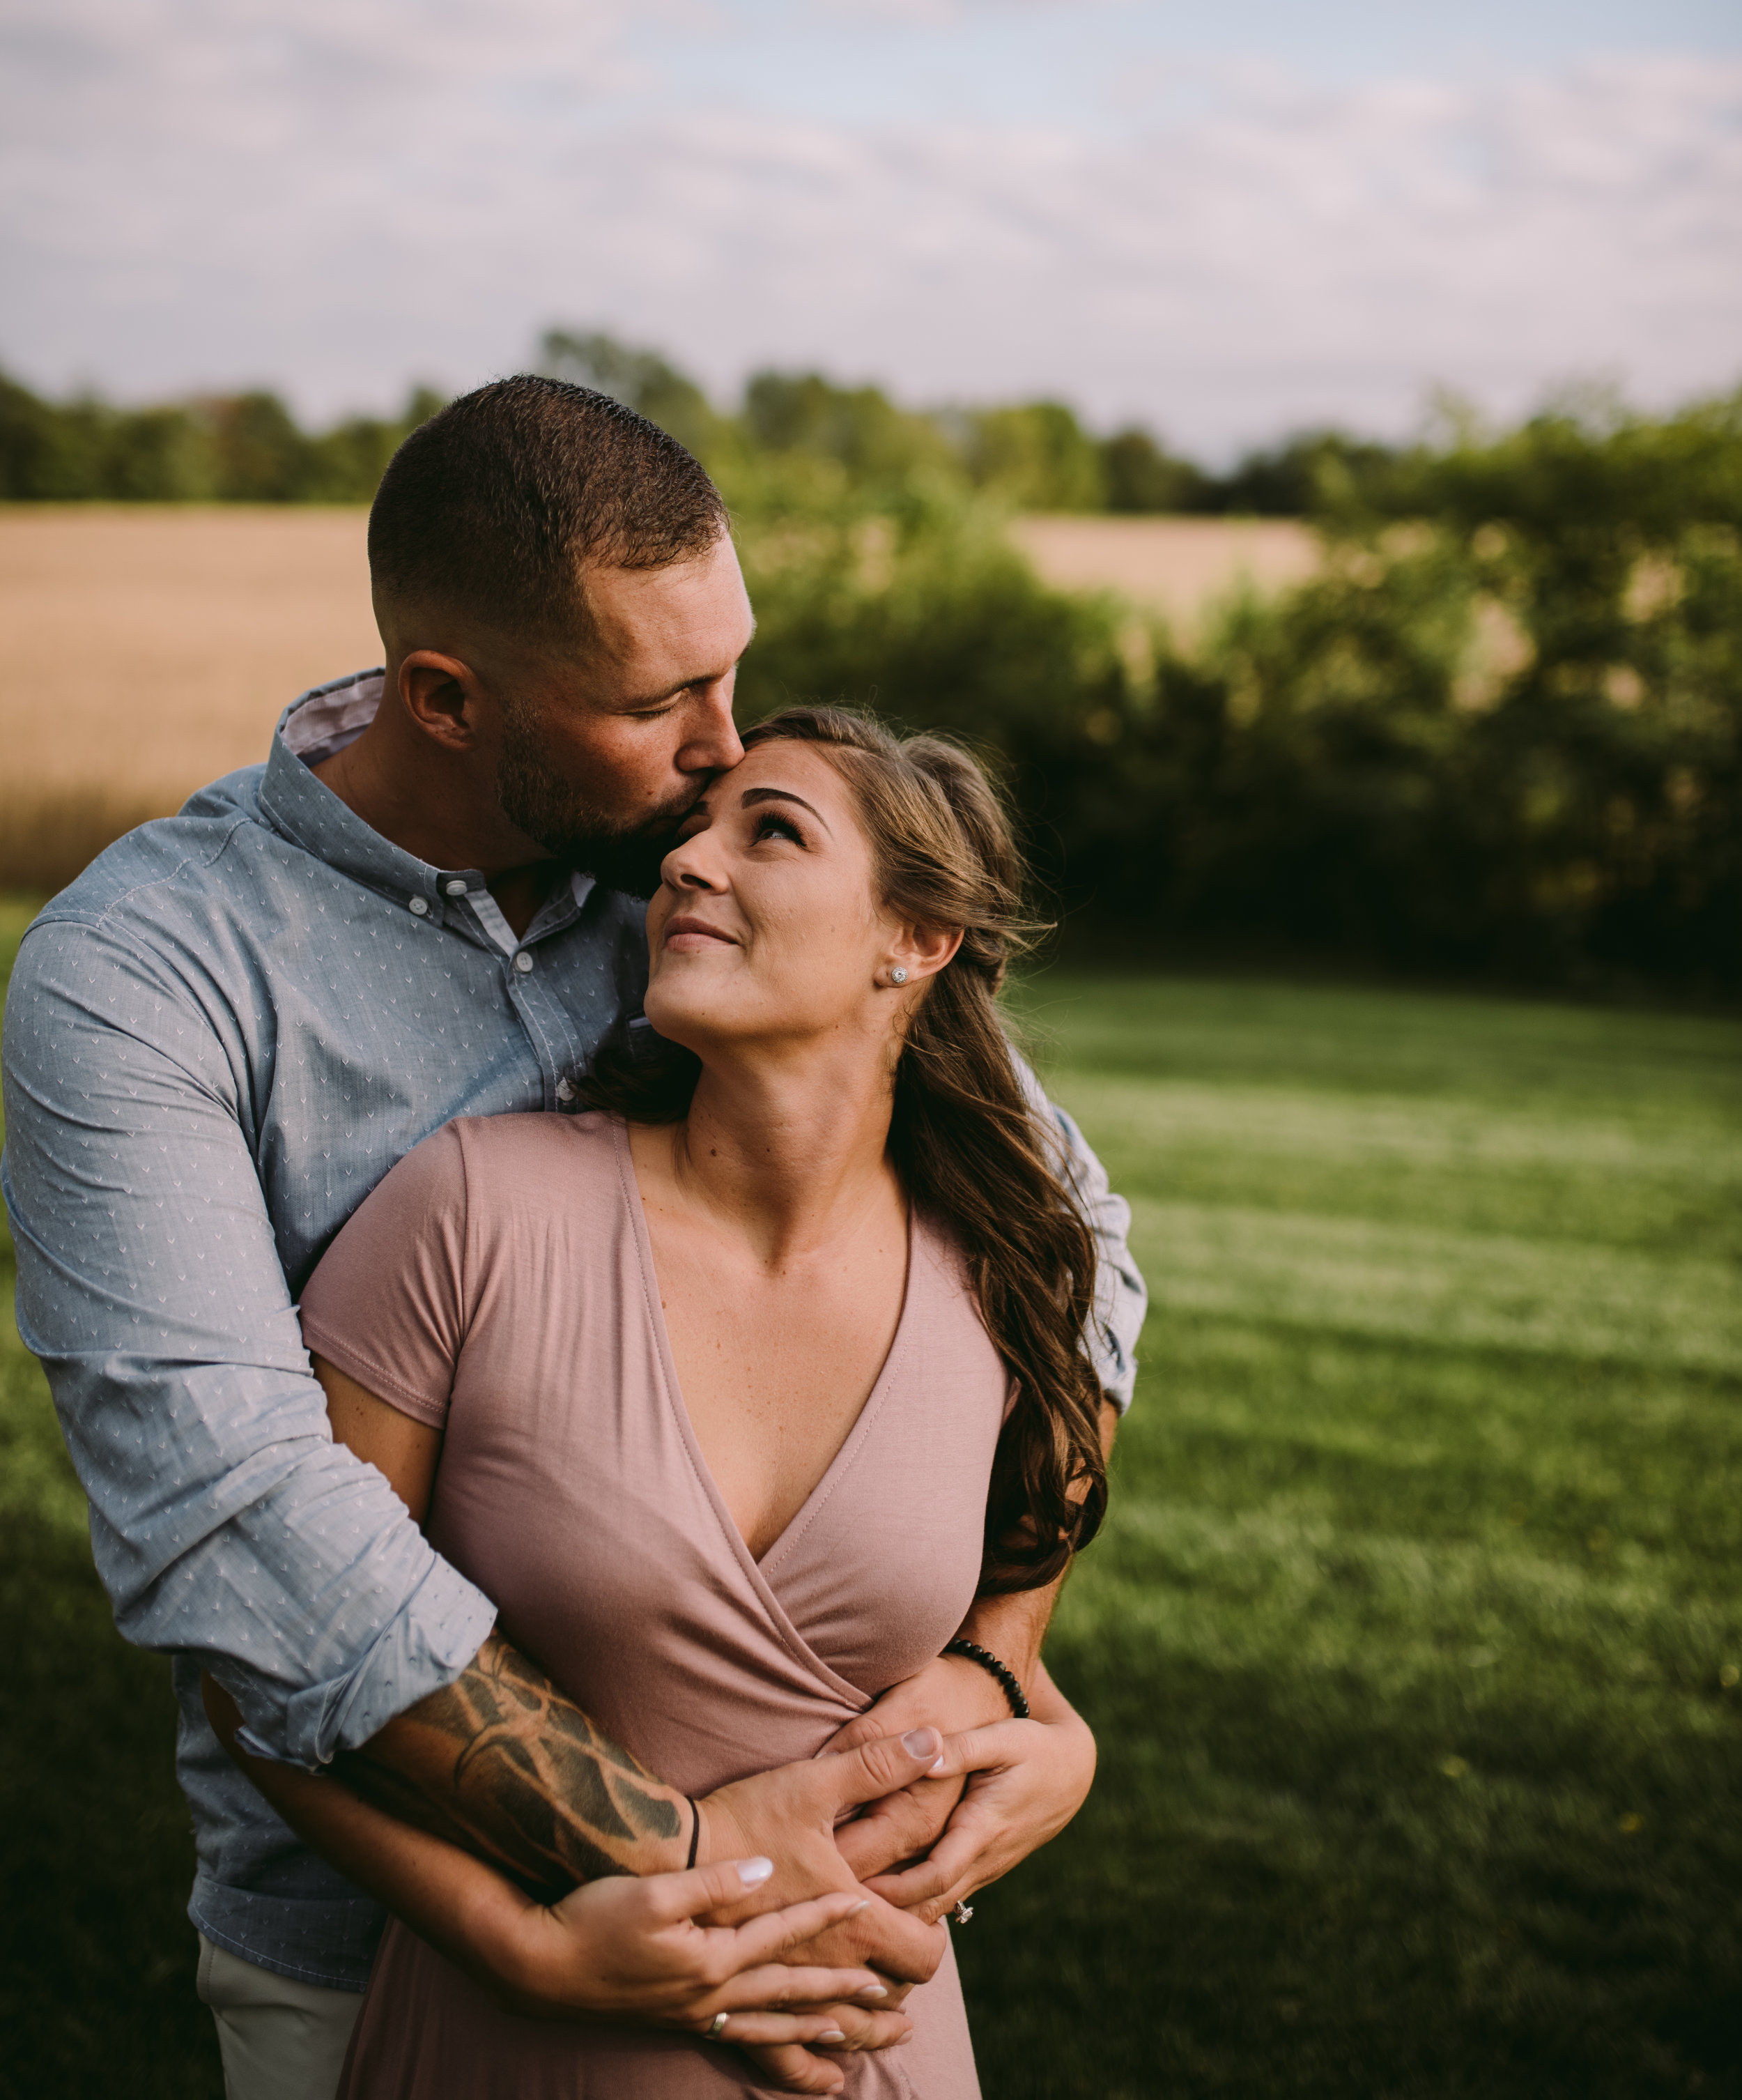 Brooke&Blake_EngagementSession_October2018_SamanthaRosePhotography_064.JPG